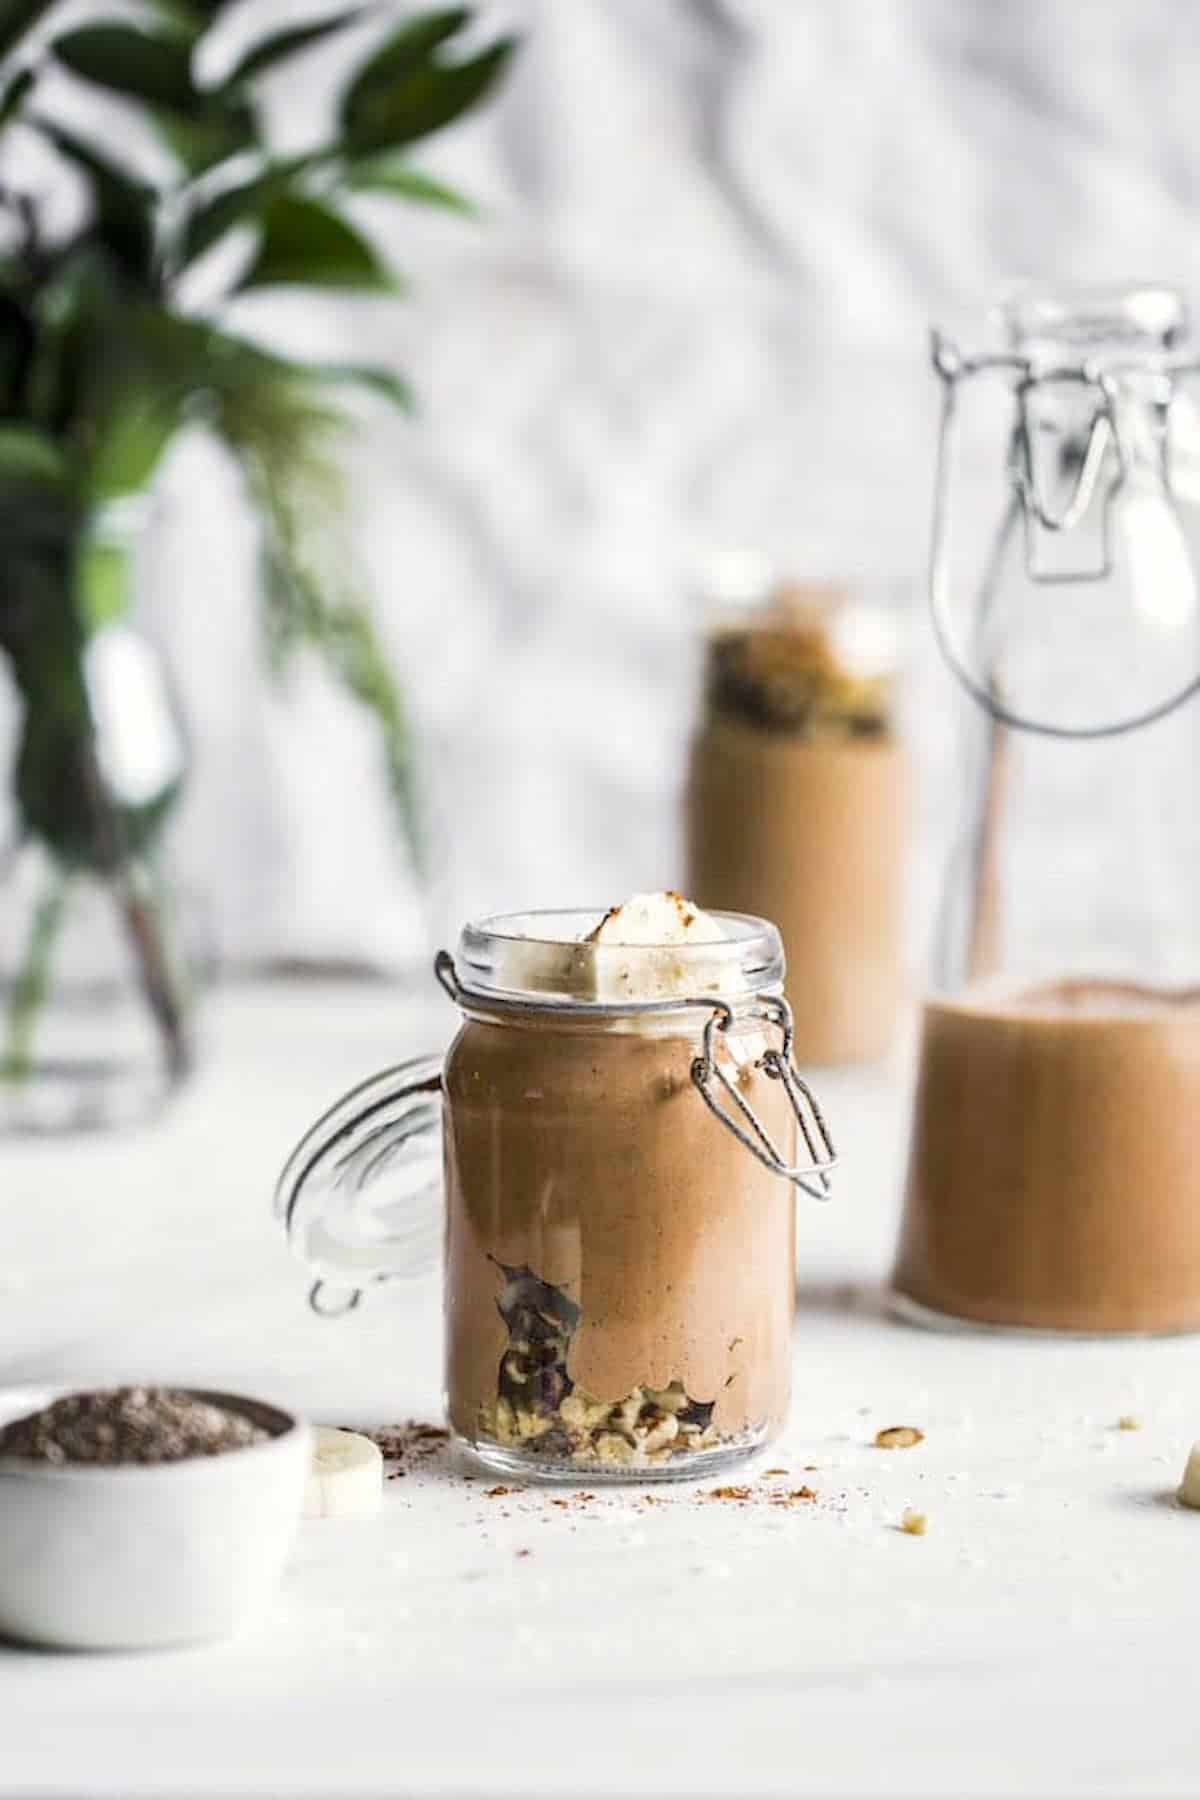 chocolate smoothie in a jar